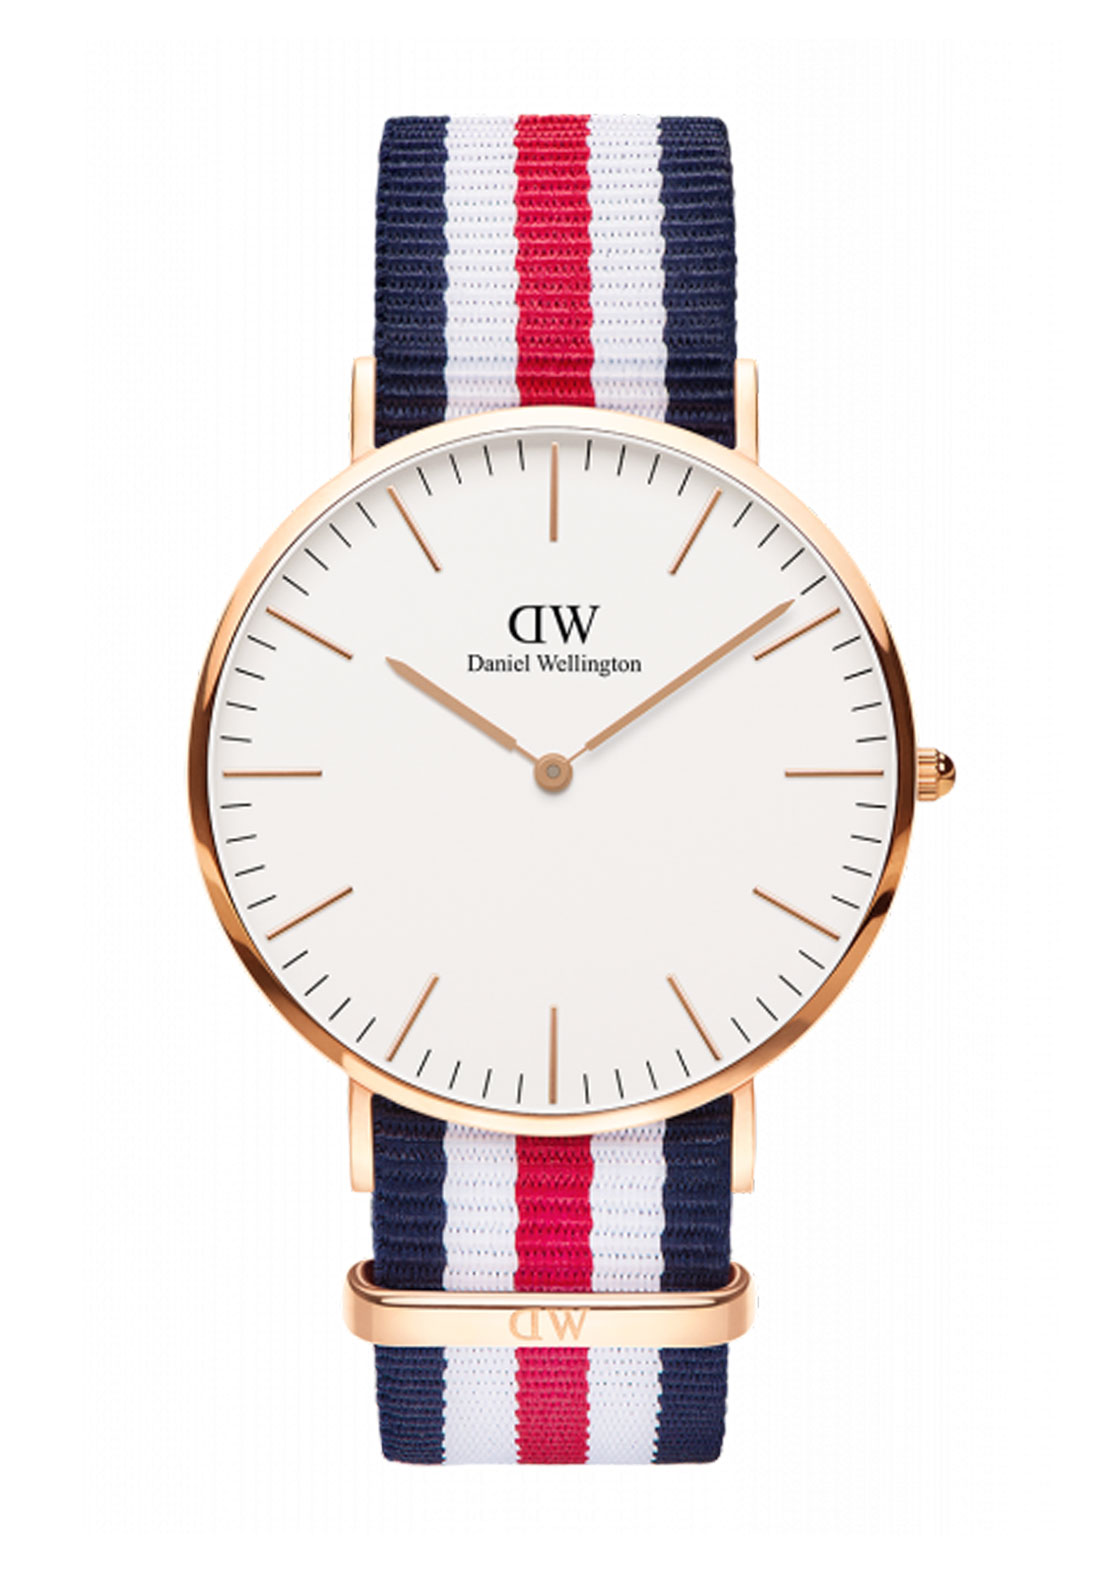 DANIEL WELLINGTON WATCHES